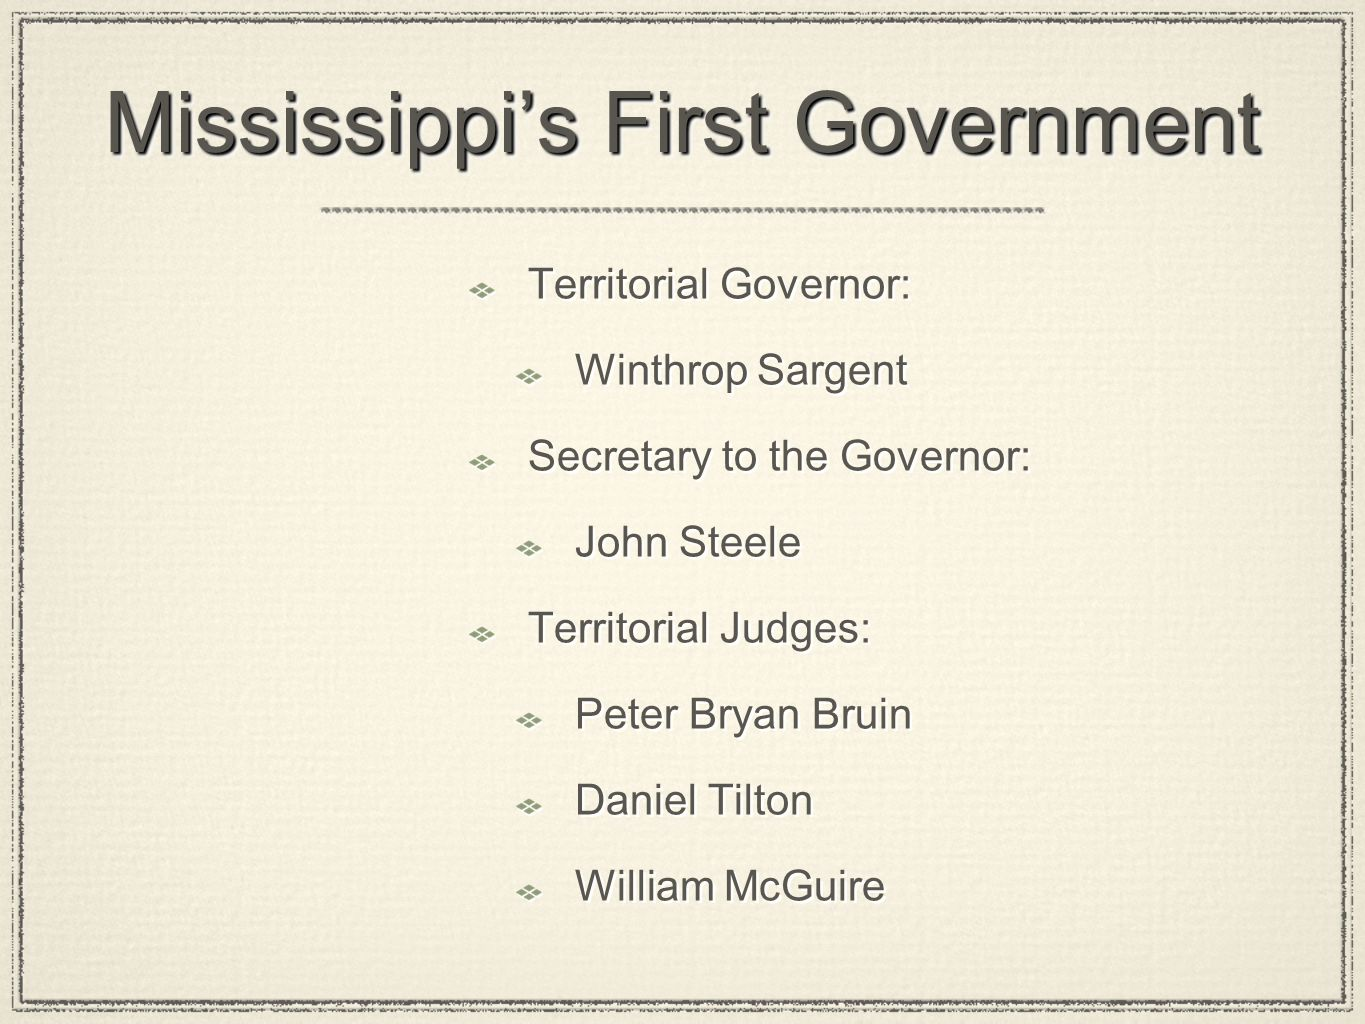 Mississippi's First Government